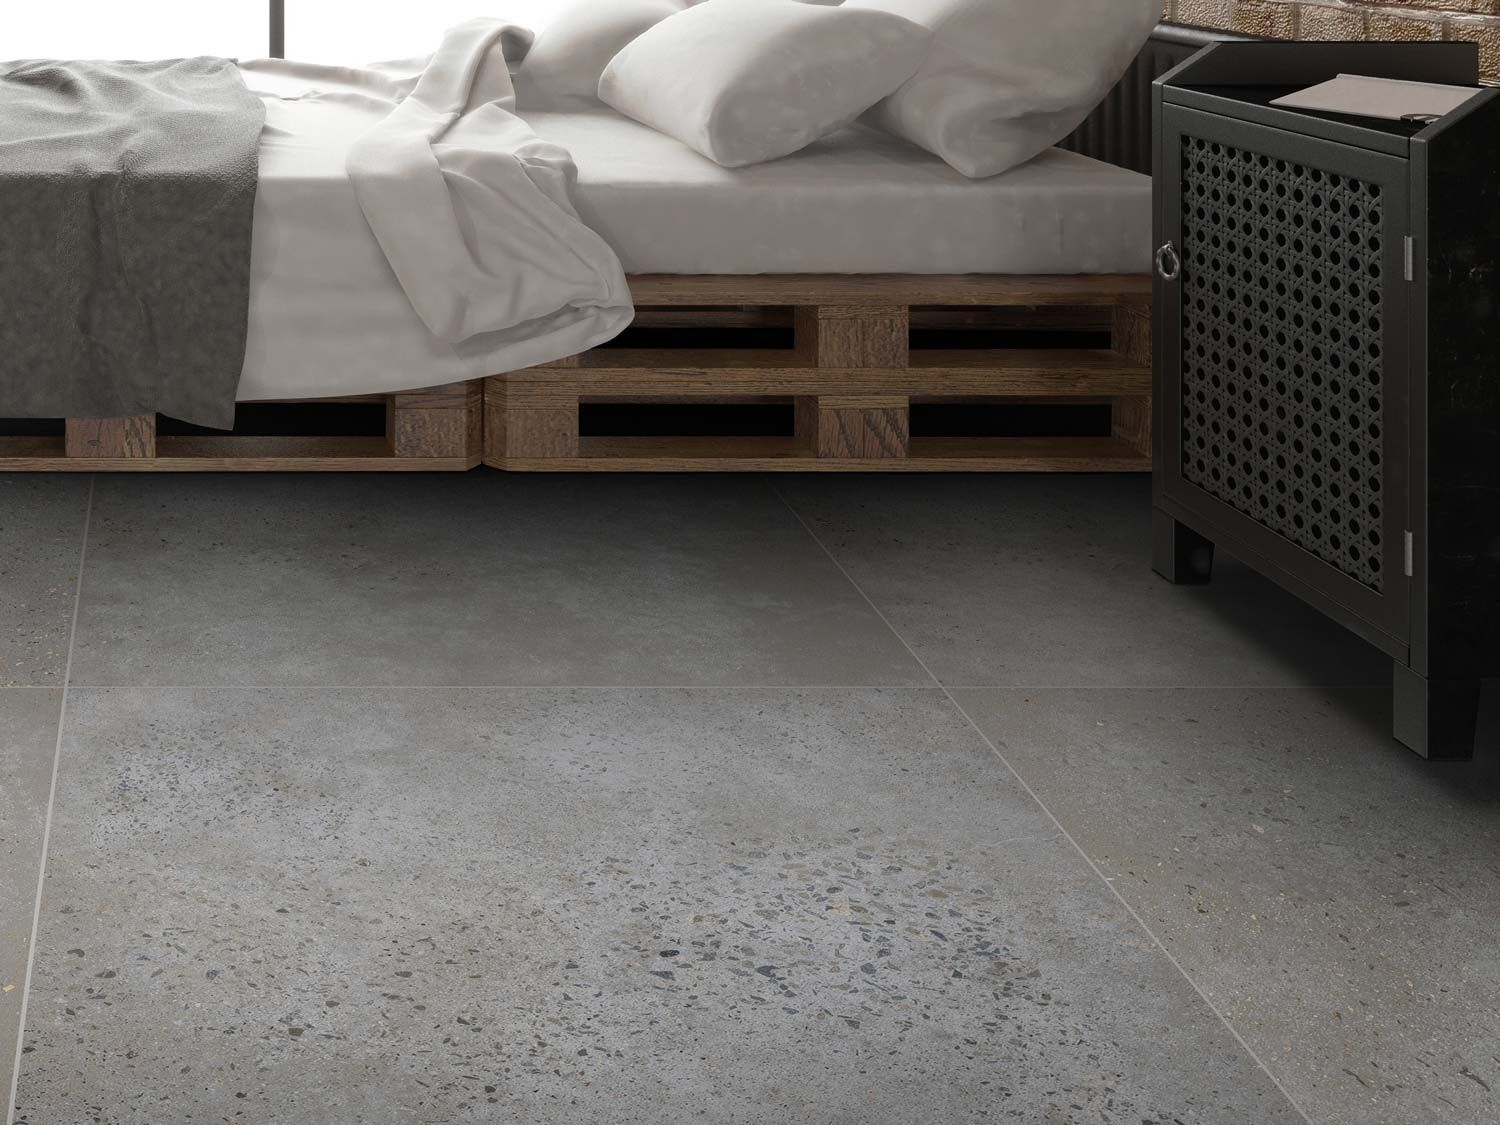 Marley floor tiles pretoria httpnextsoft21 pinterest marley floor tiles pretoria you can find lots of things to think about if you are contemplating installing tile flooring o dailygadgetfo Images